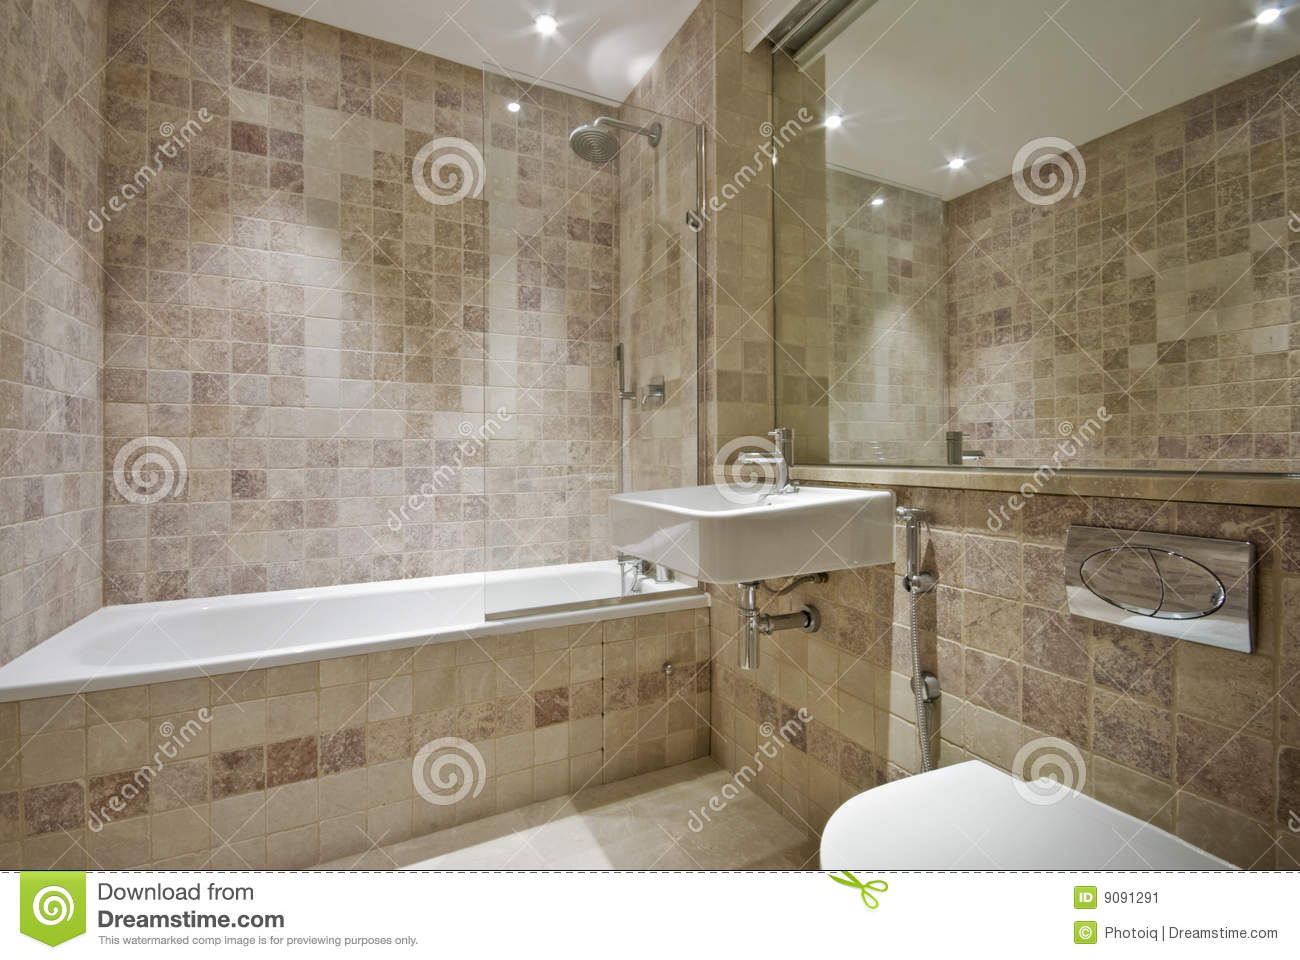 30 stunning natural stone bathroom ideas and pictures ForGranite And Tile Bathroom Ideas